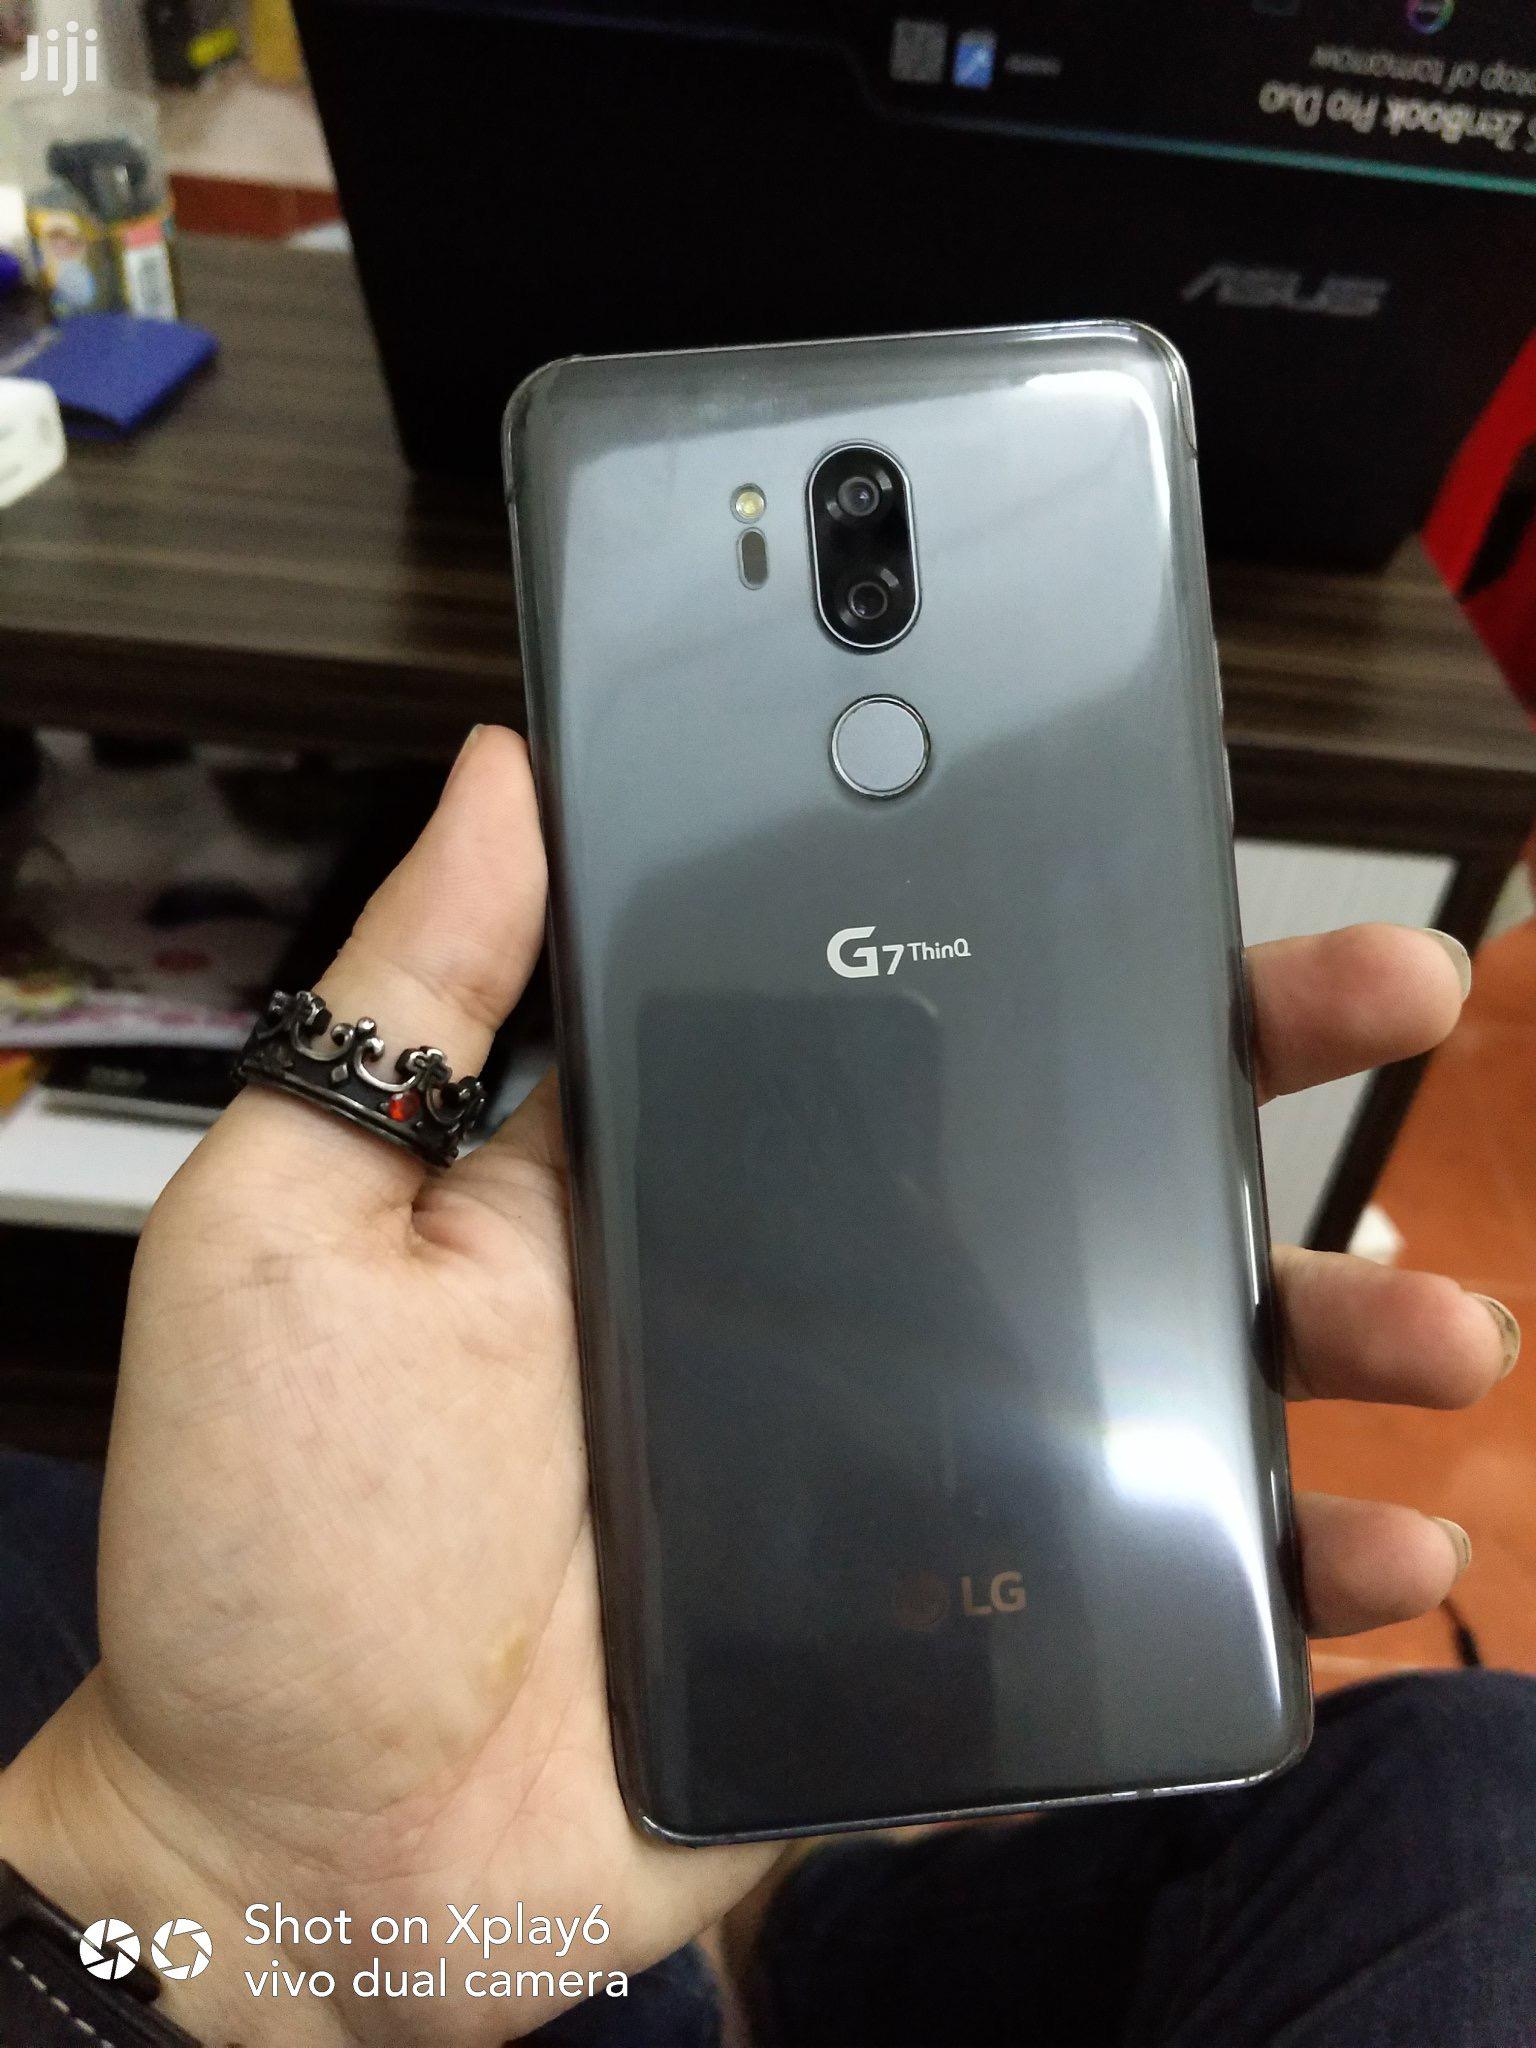 New LG G7 ThinQ 64 GB Black | Mobile Phones for sale in Accra new Town, Greater Accra, Ghana